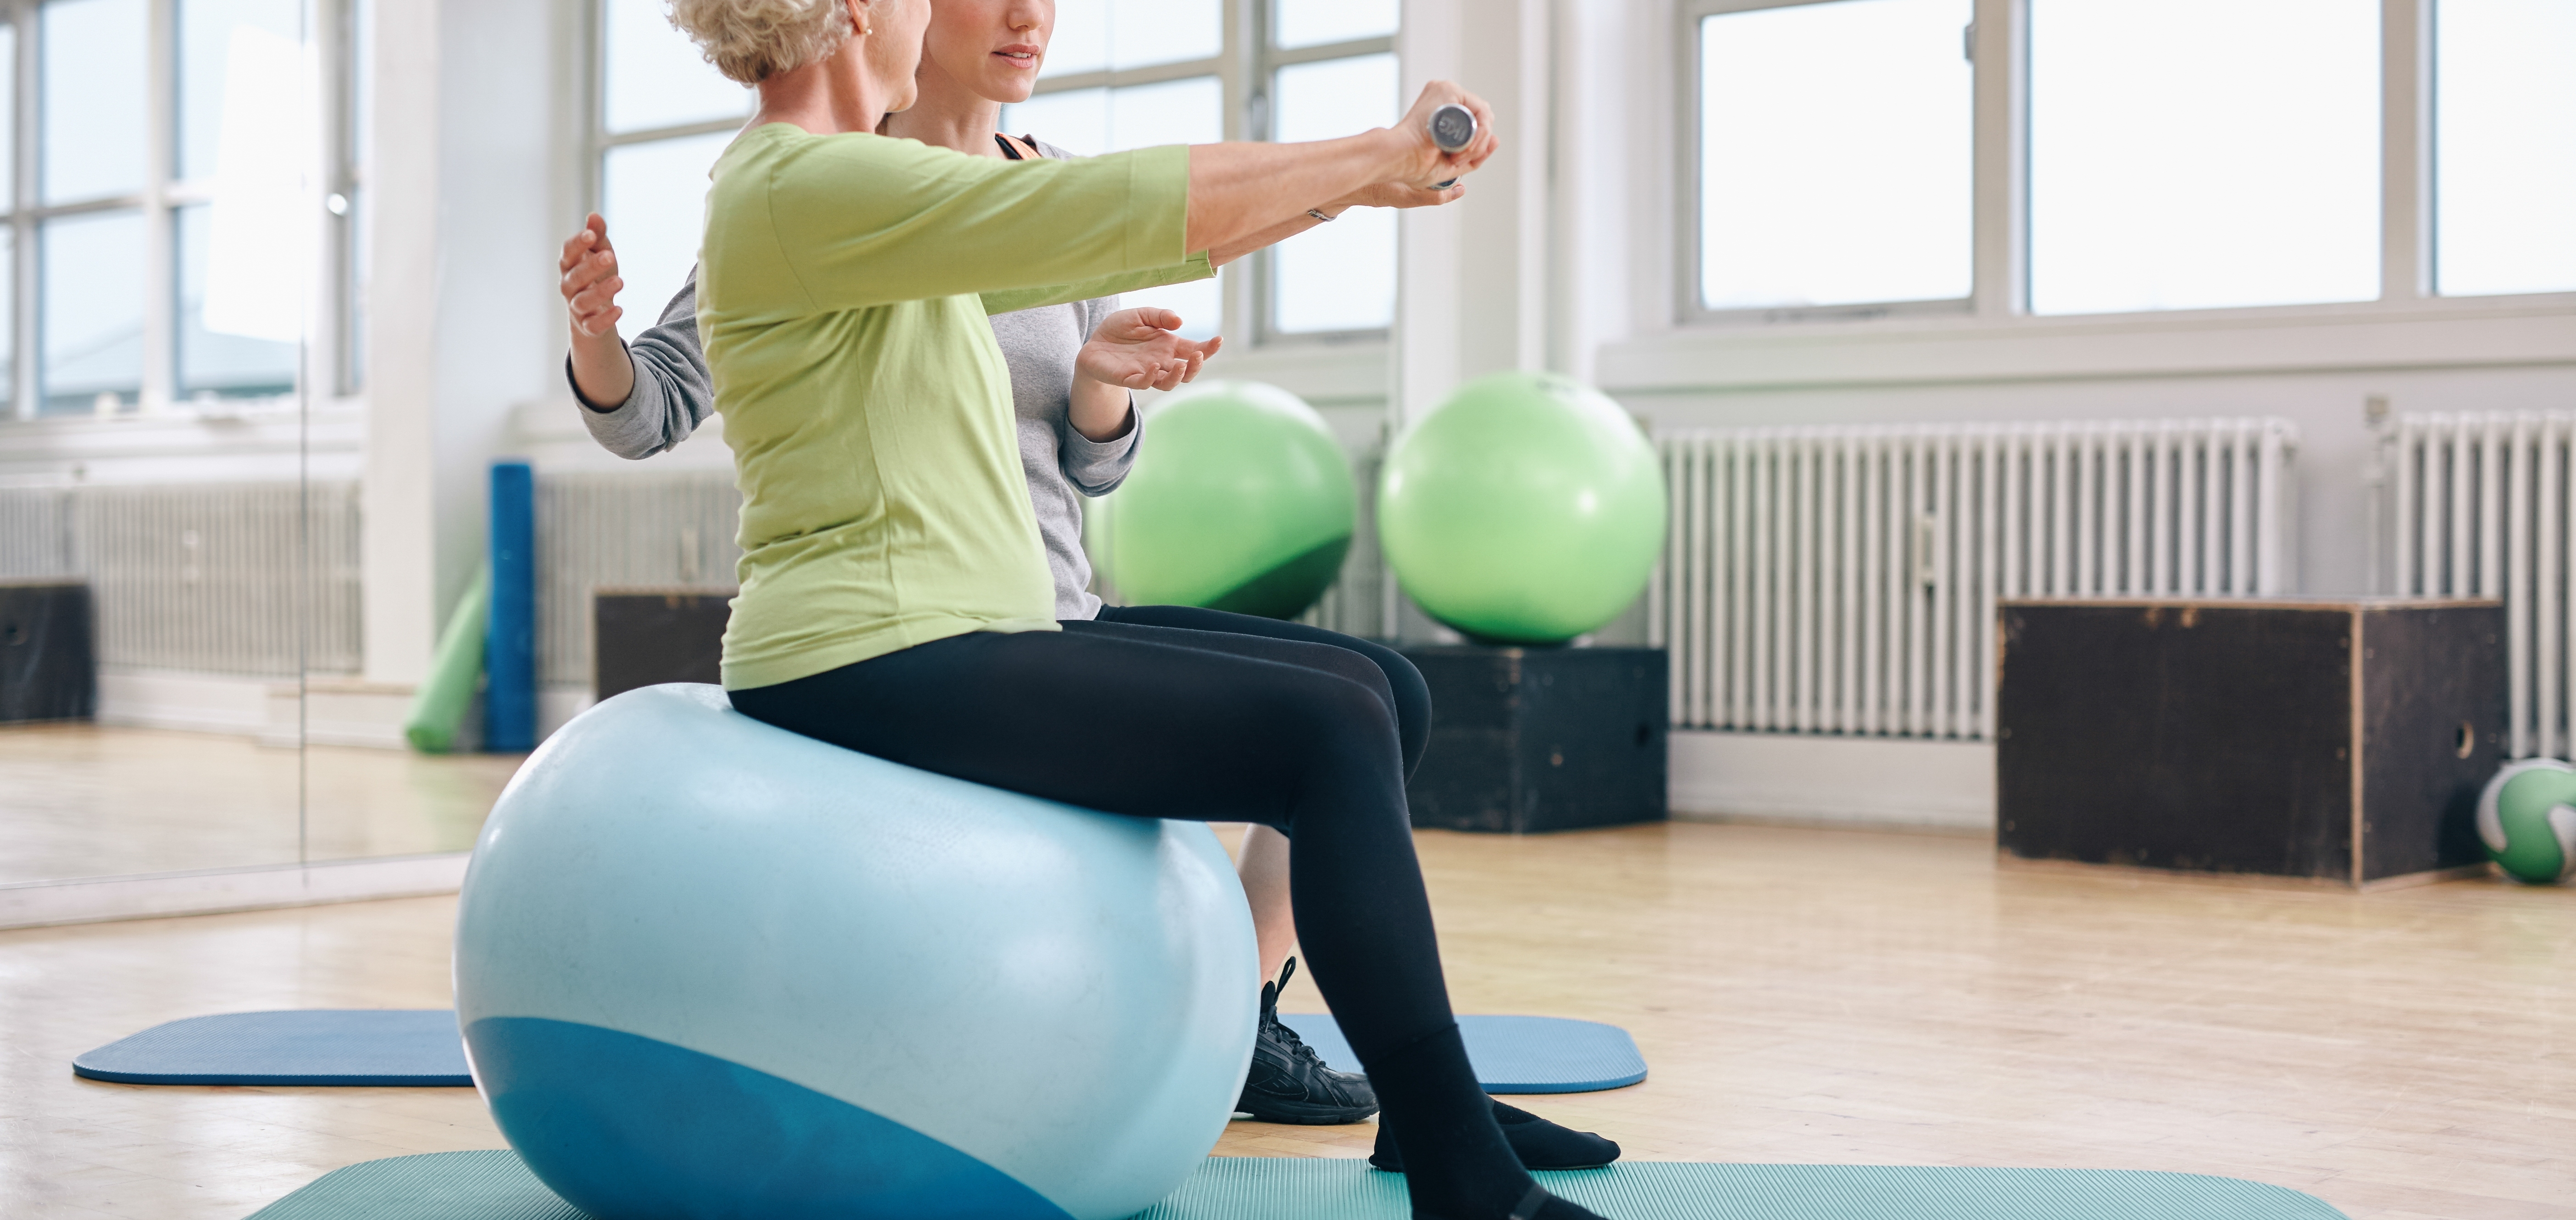 Elderly Lady on Excercise Ball with her Trainer with Weights: Clinton Manor in Breese, IL